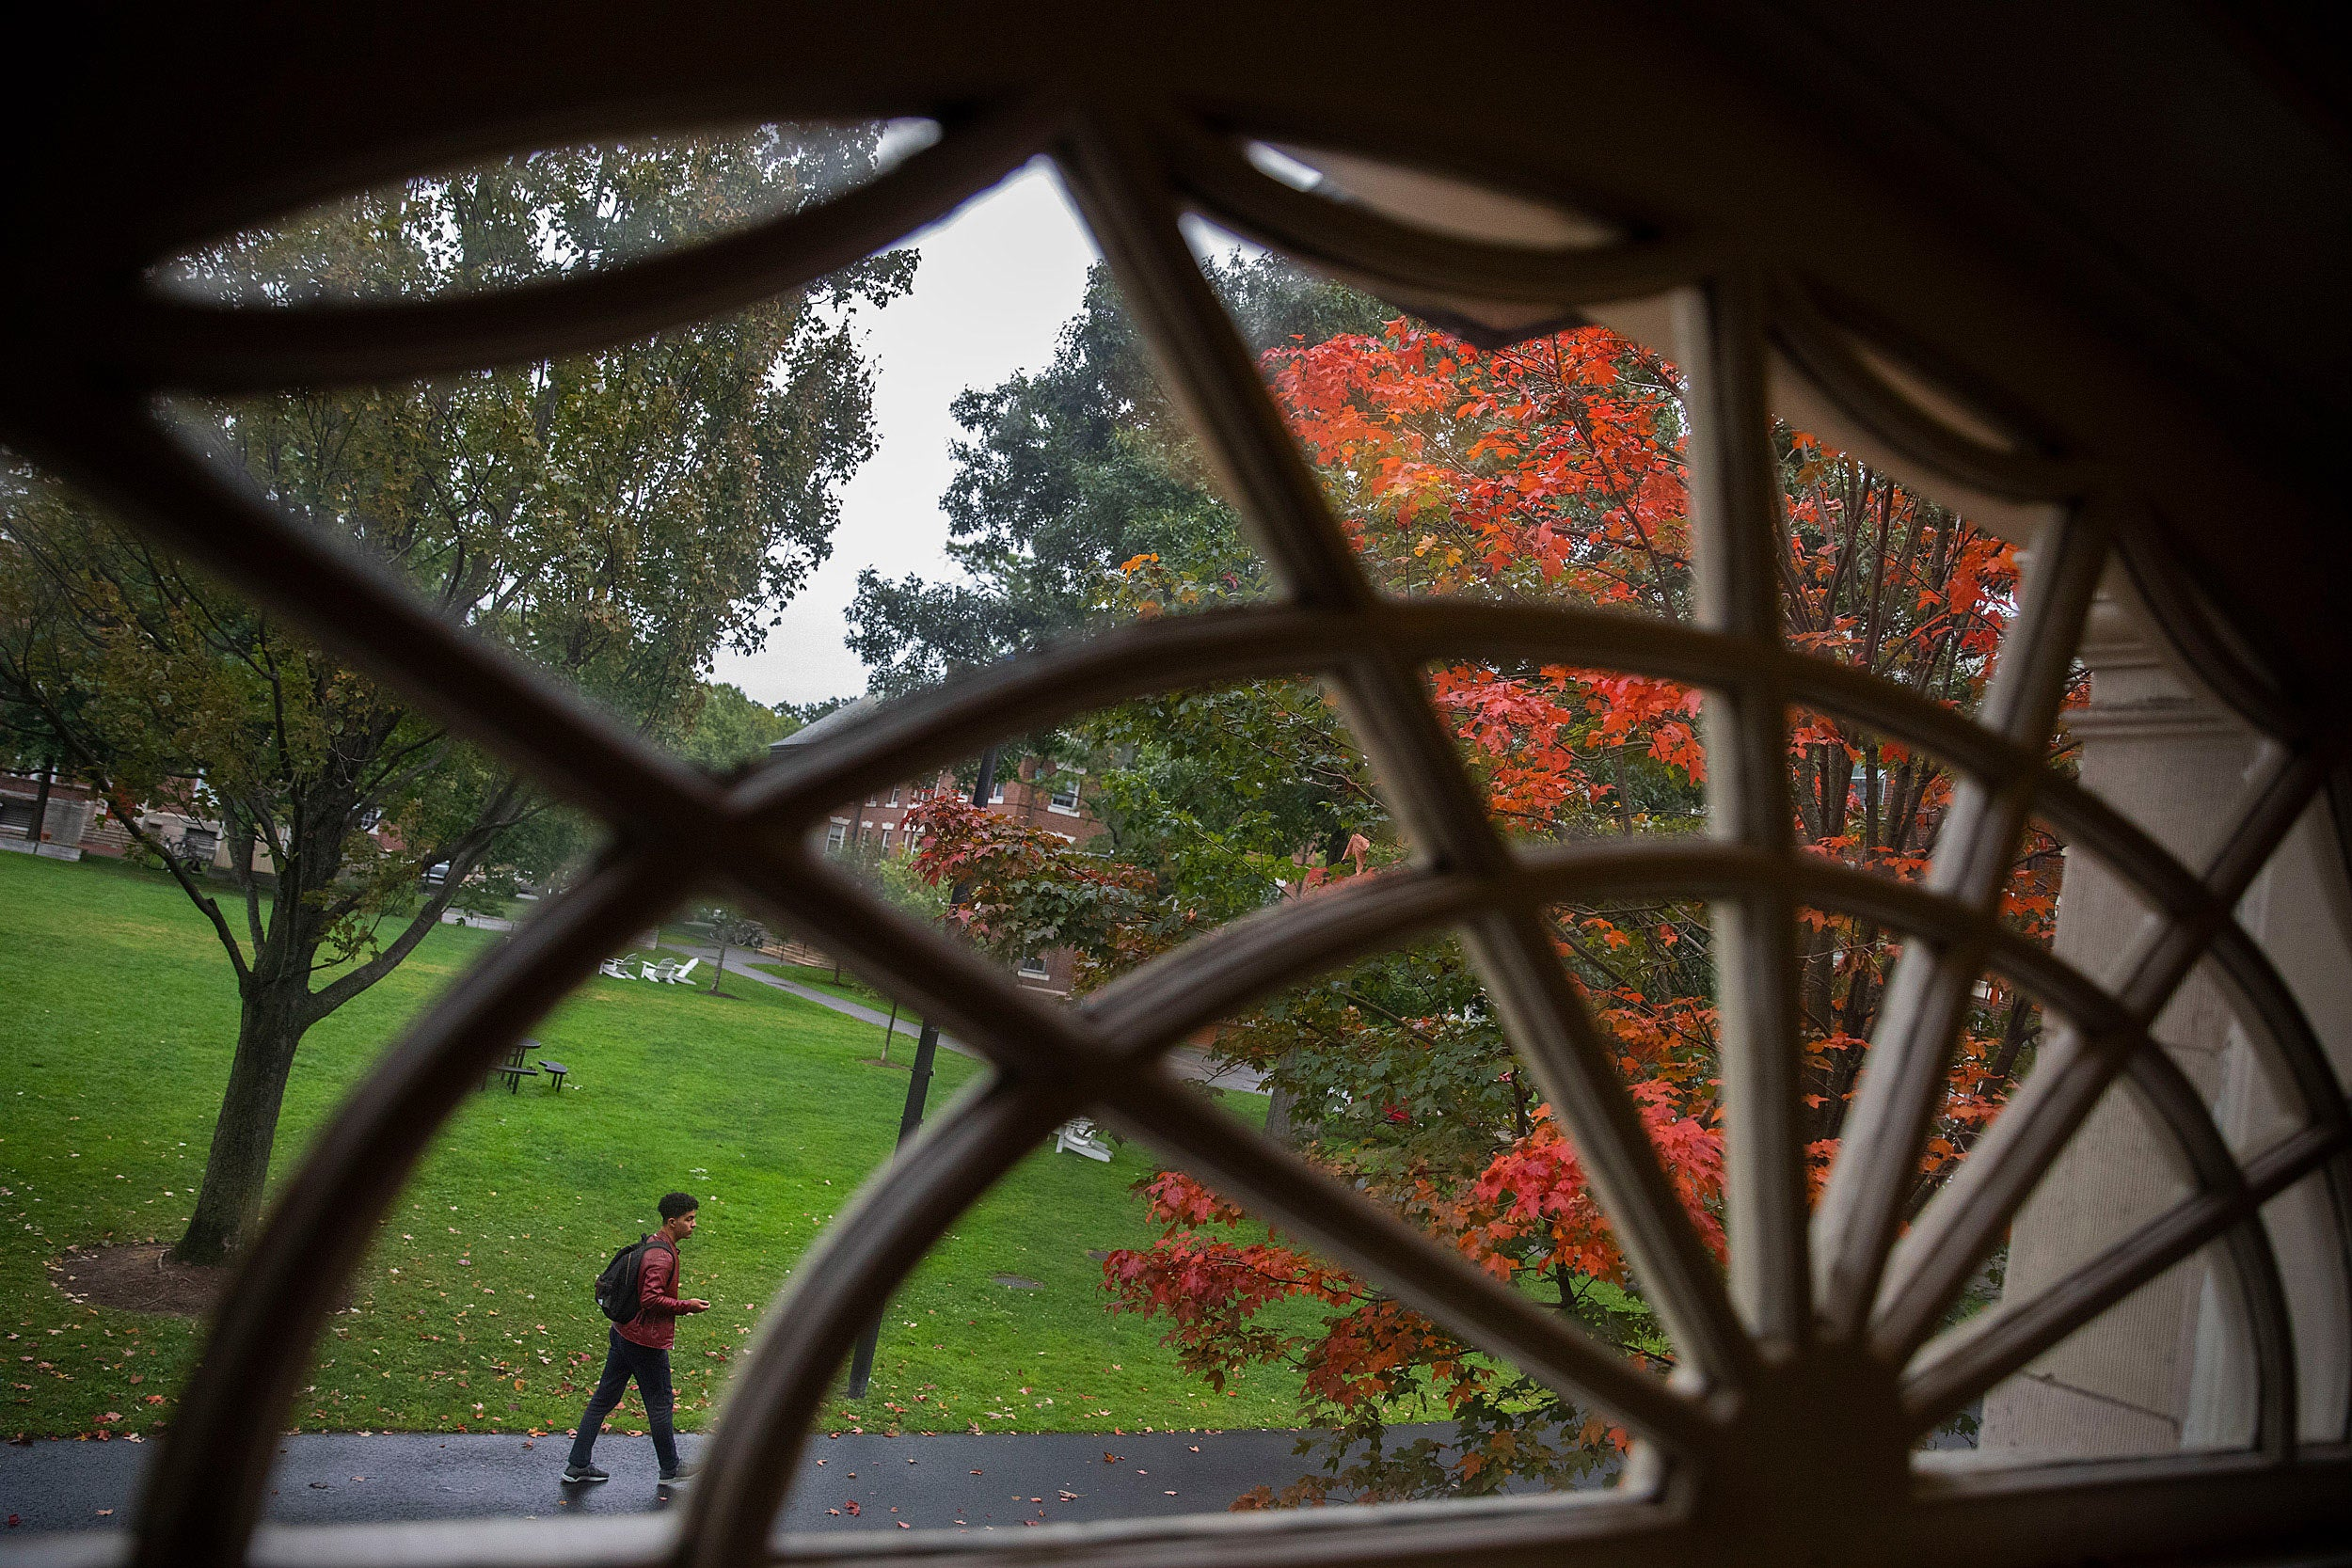 A student walking by a window with a frame that looks like a metal spider web.